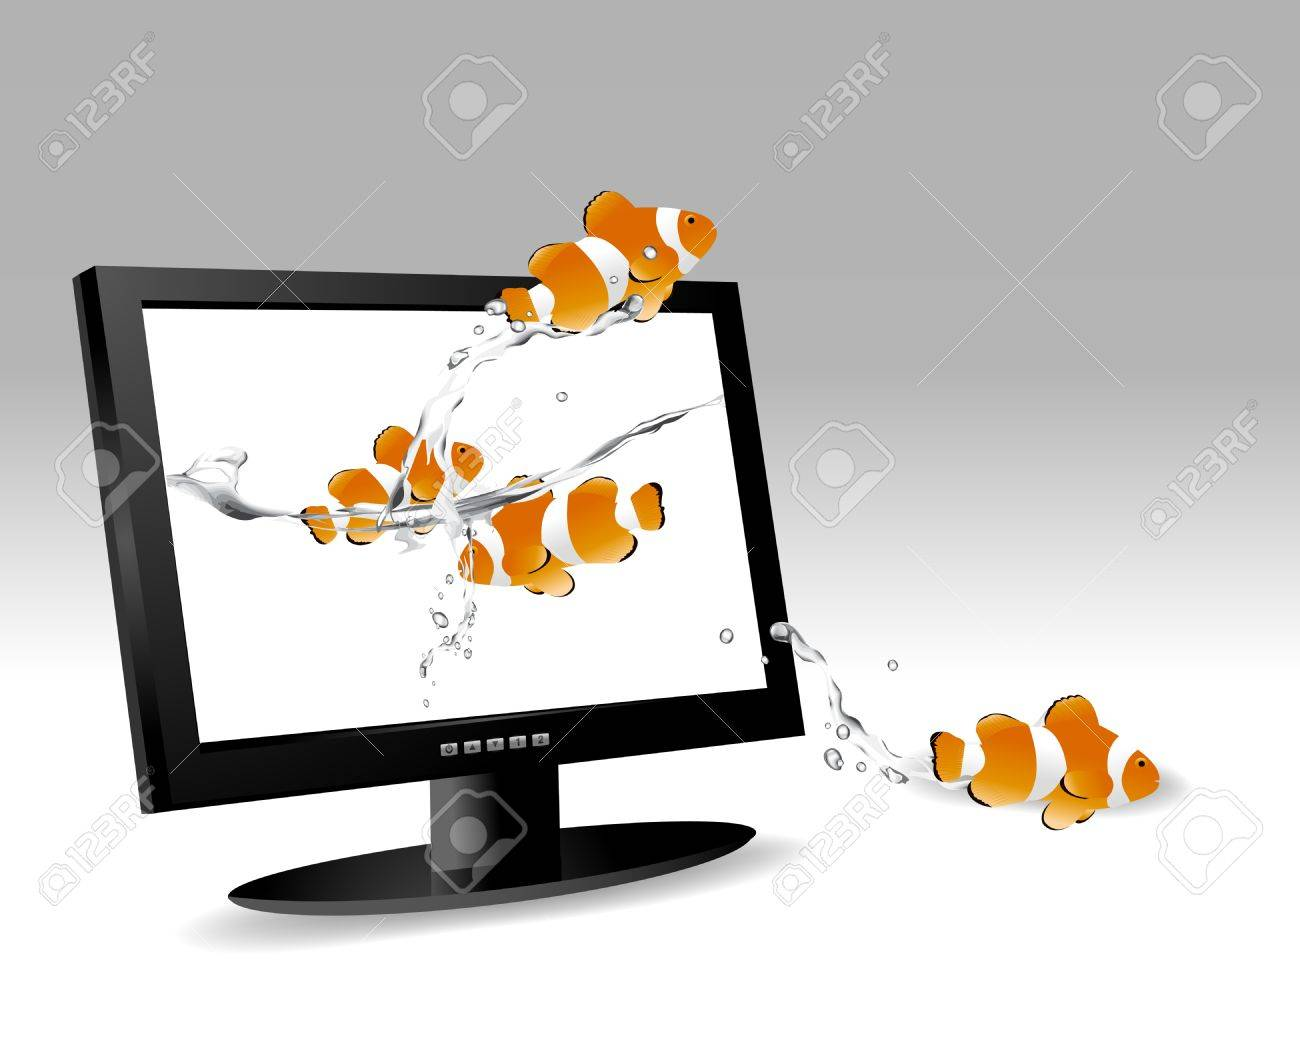 frontal view of widescreen lcd monitor, and clown fish jumping out of the screen. Stock Vector - 8300158